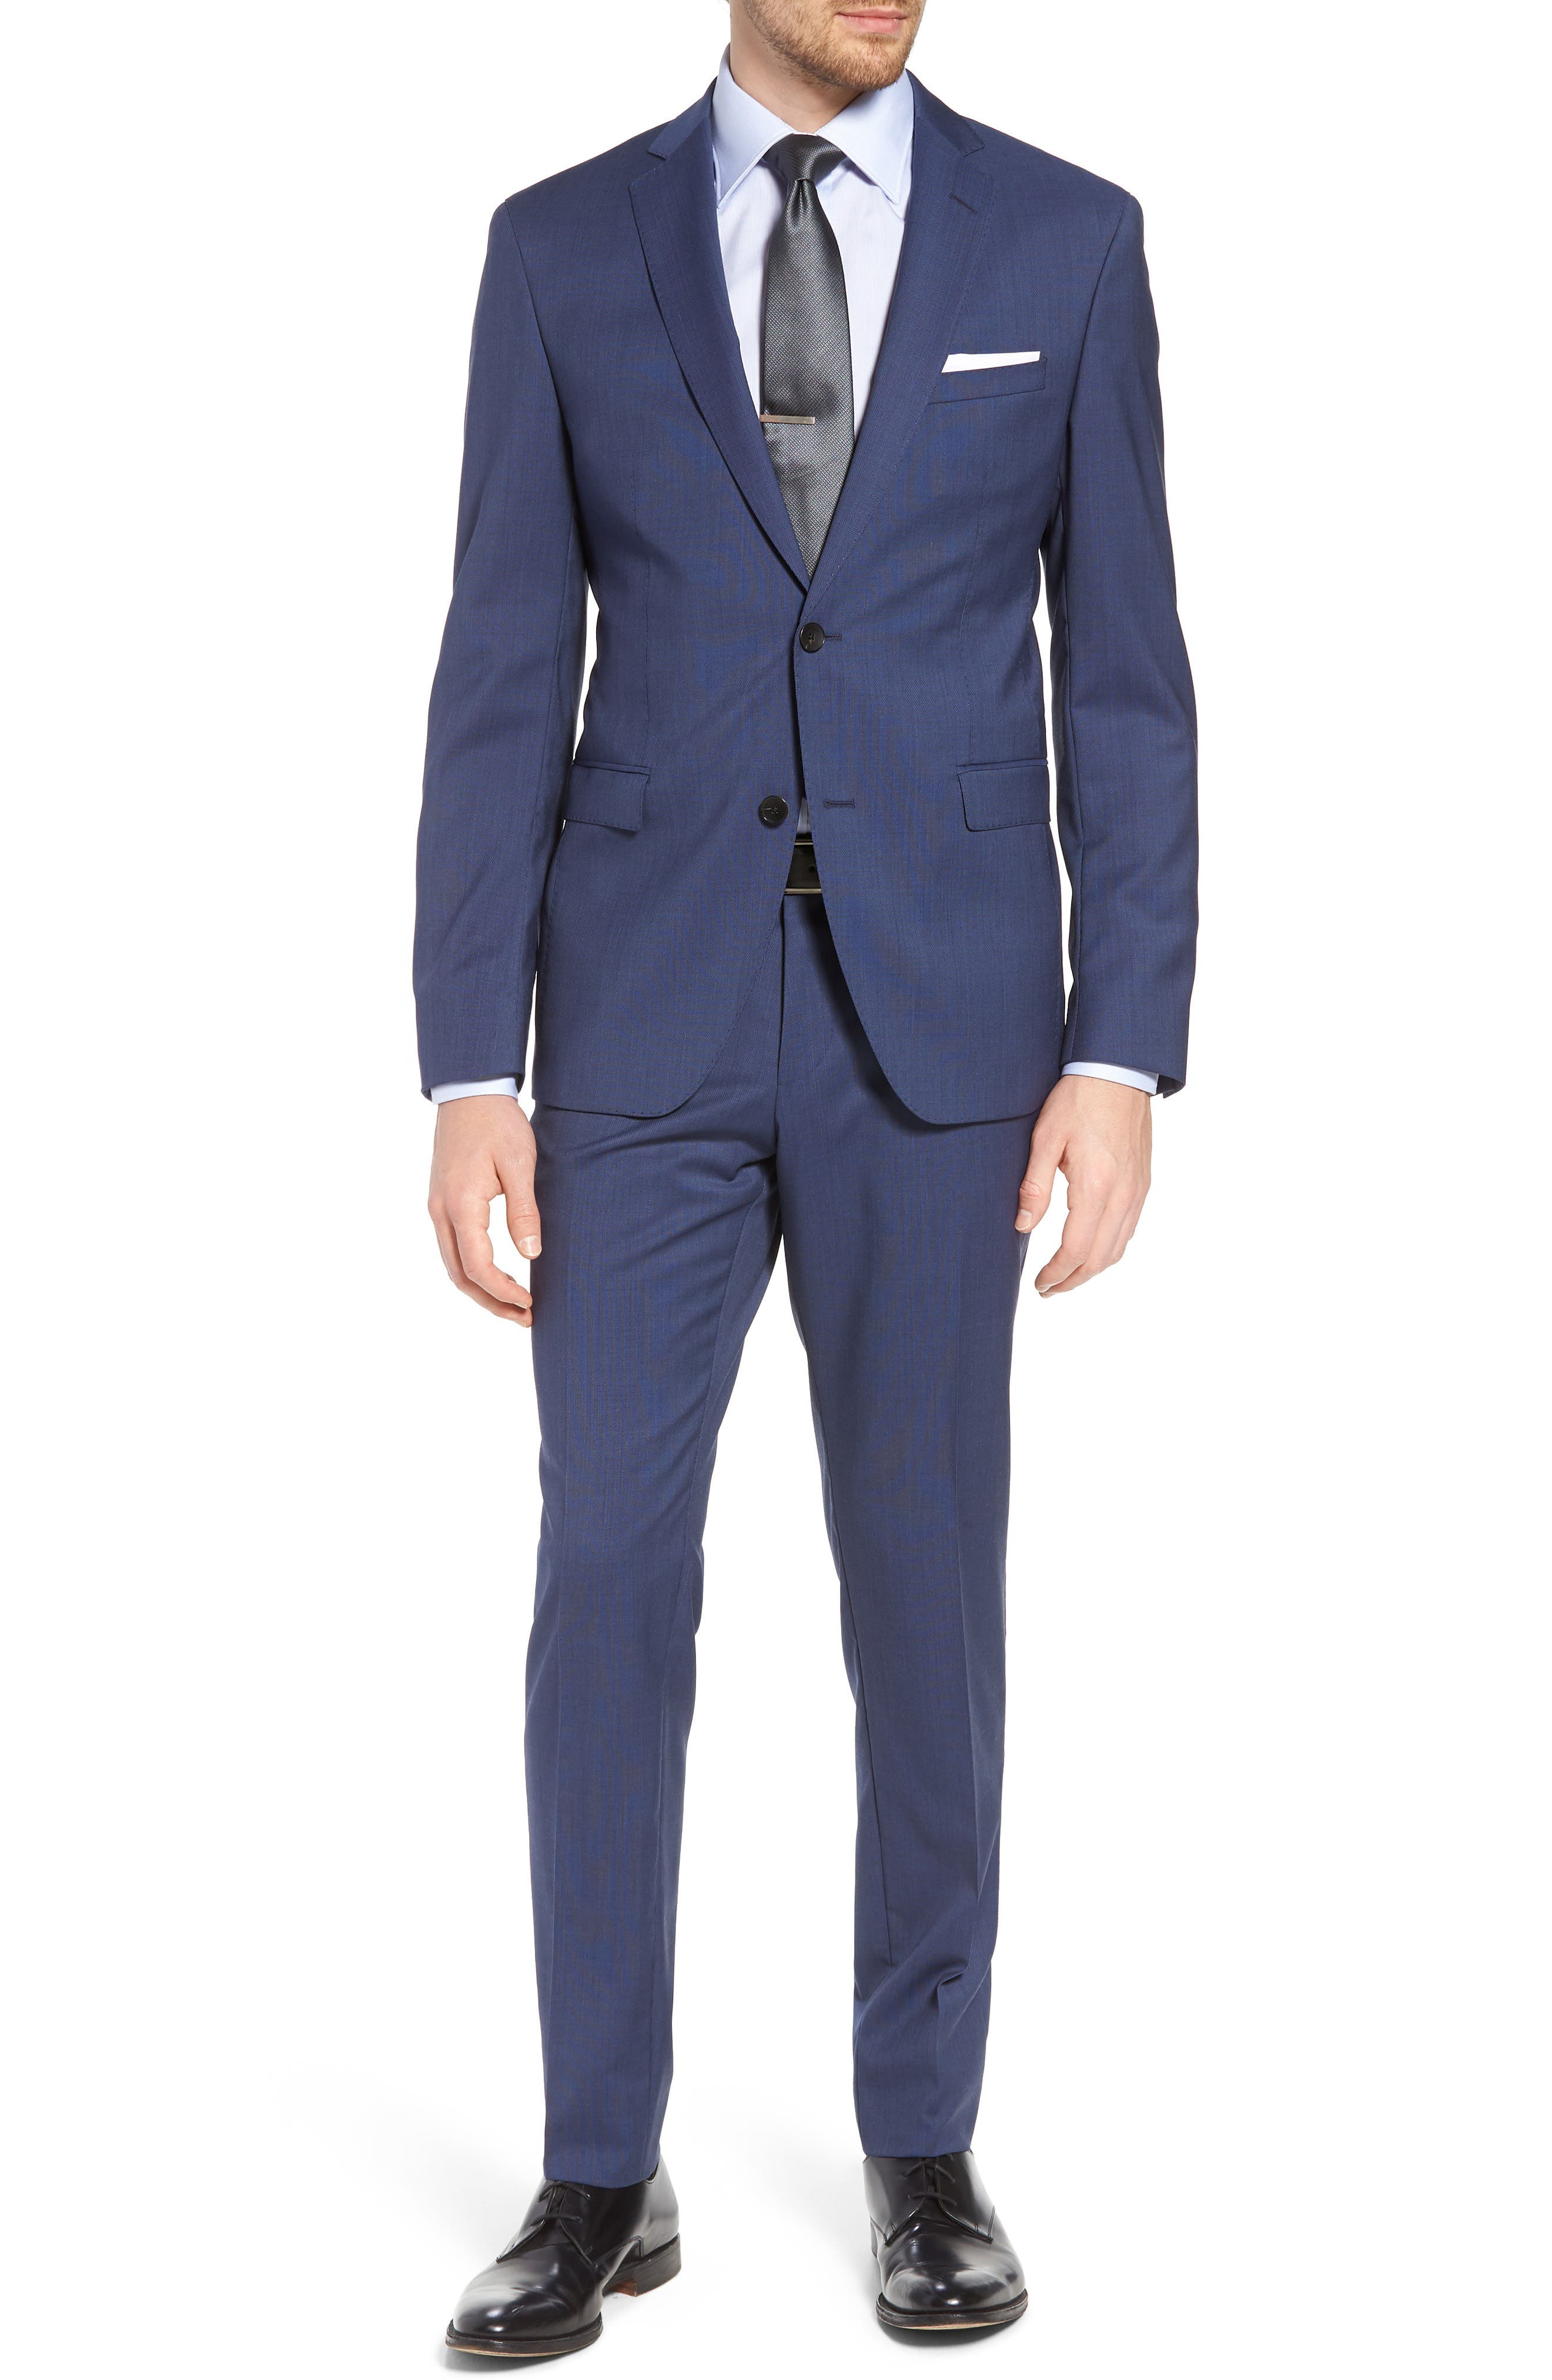 Reyno/Wave Extra Trim Fit Solid Wool Suit,                         Main,                         color, Medium Blue